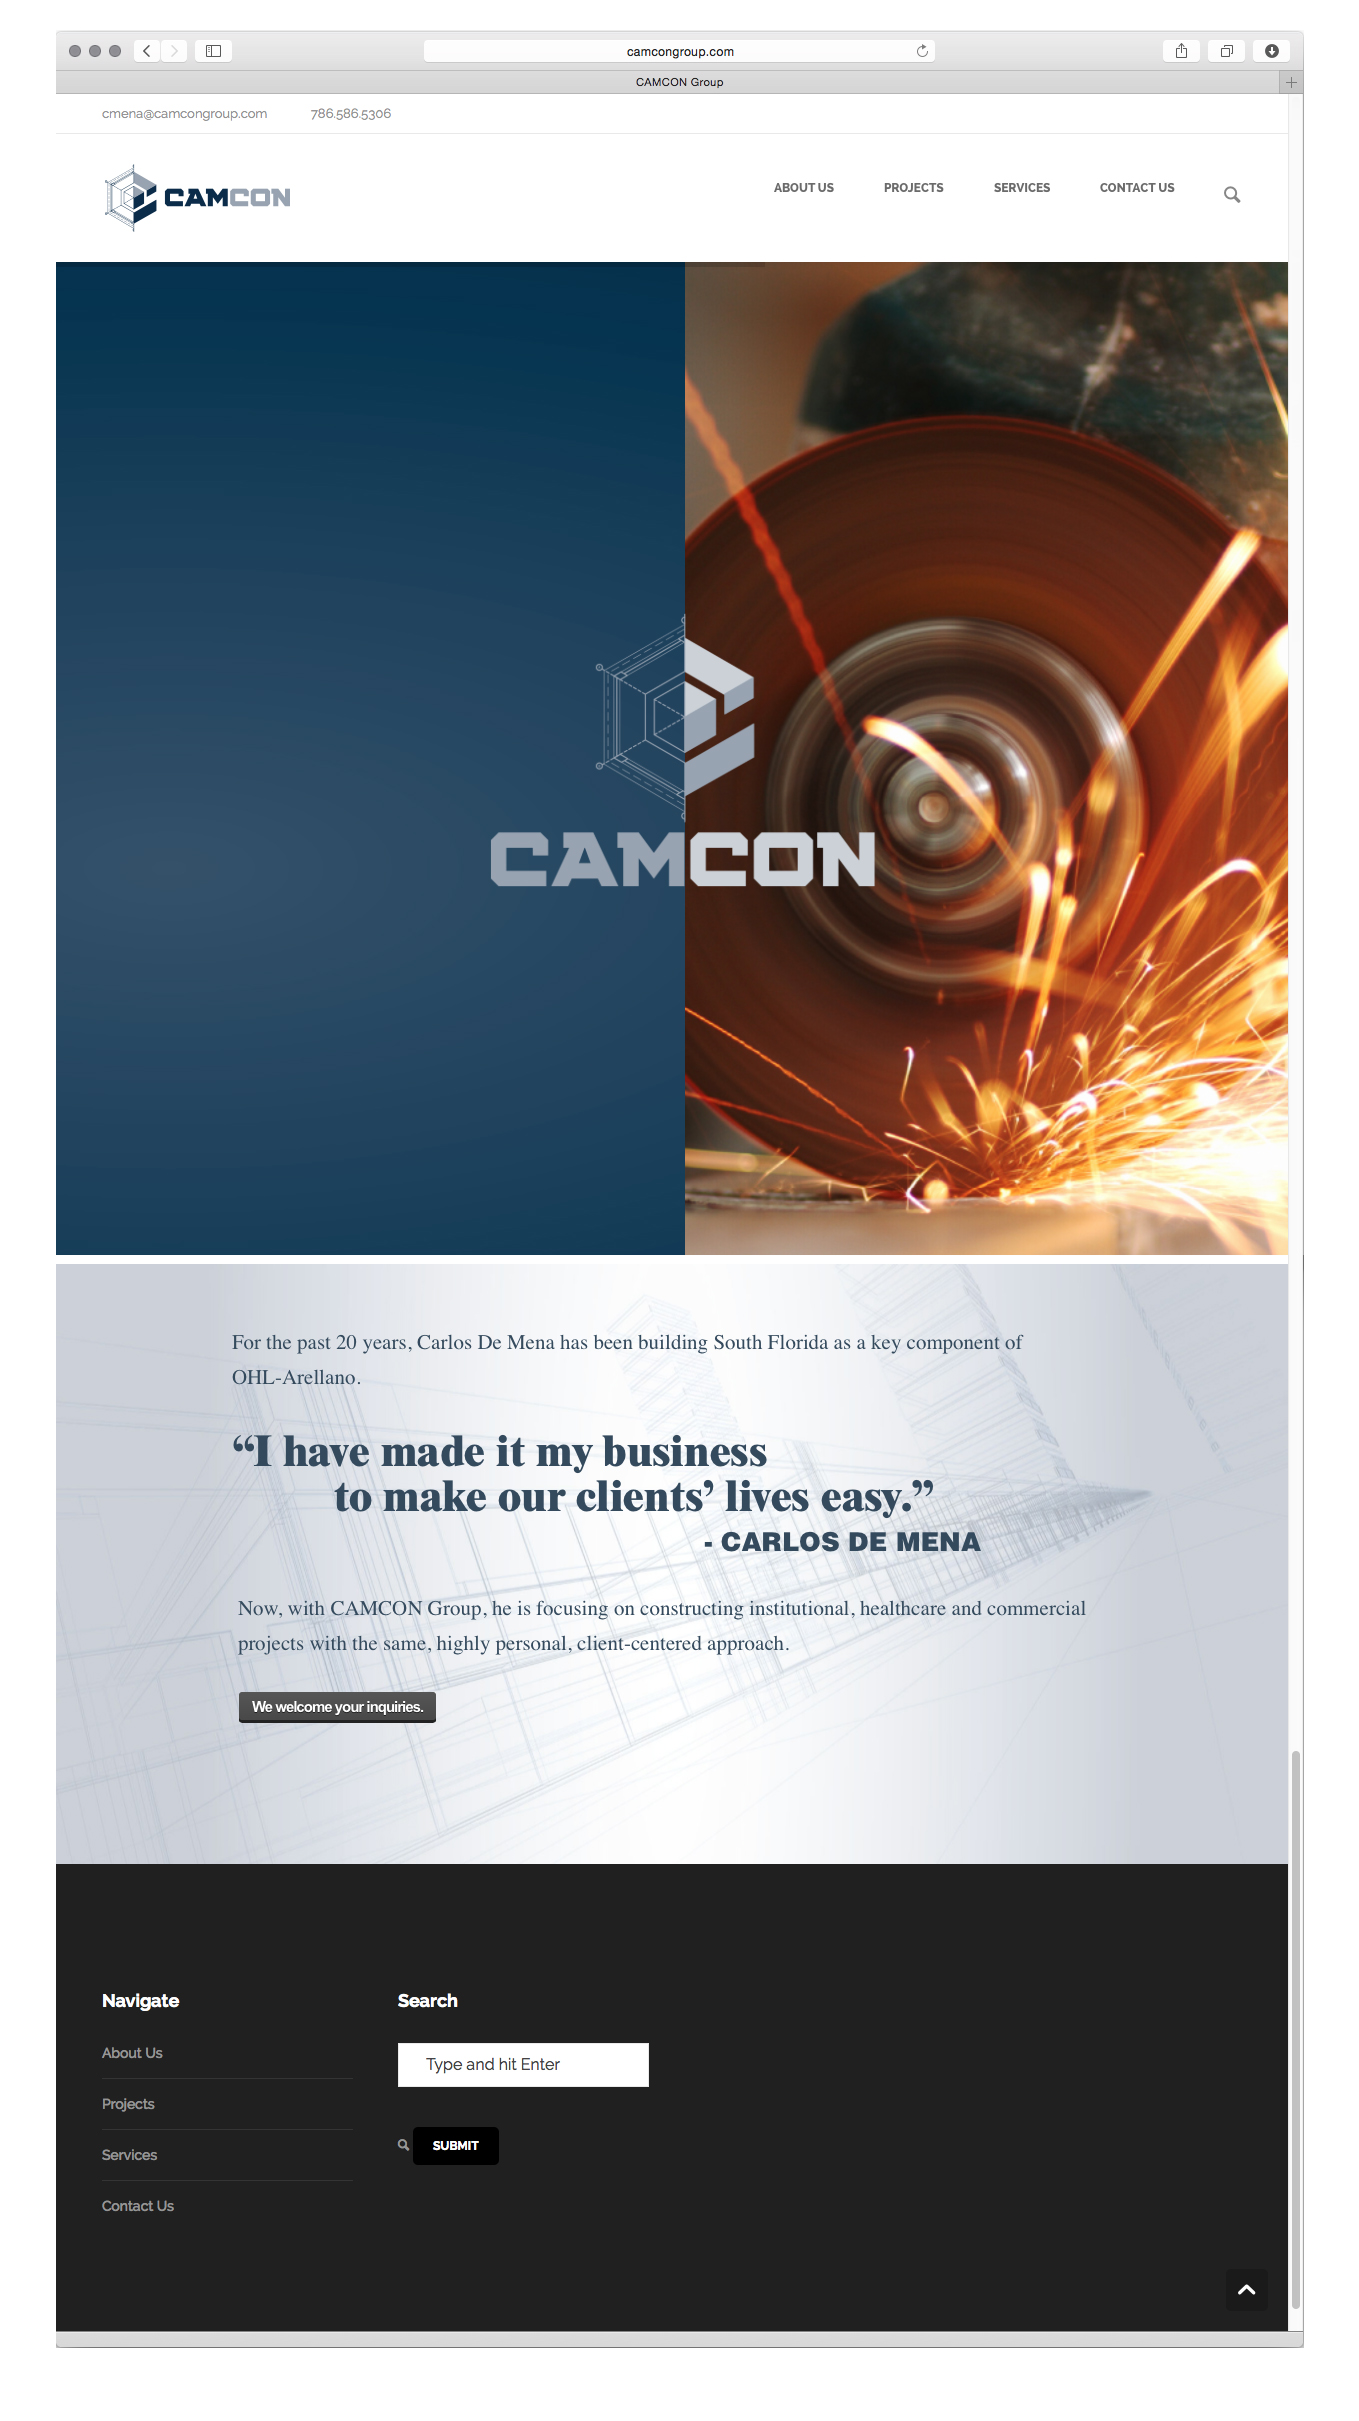 Camcon_homepage